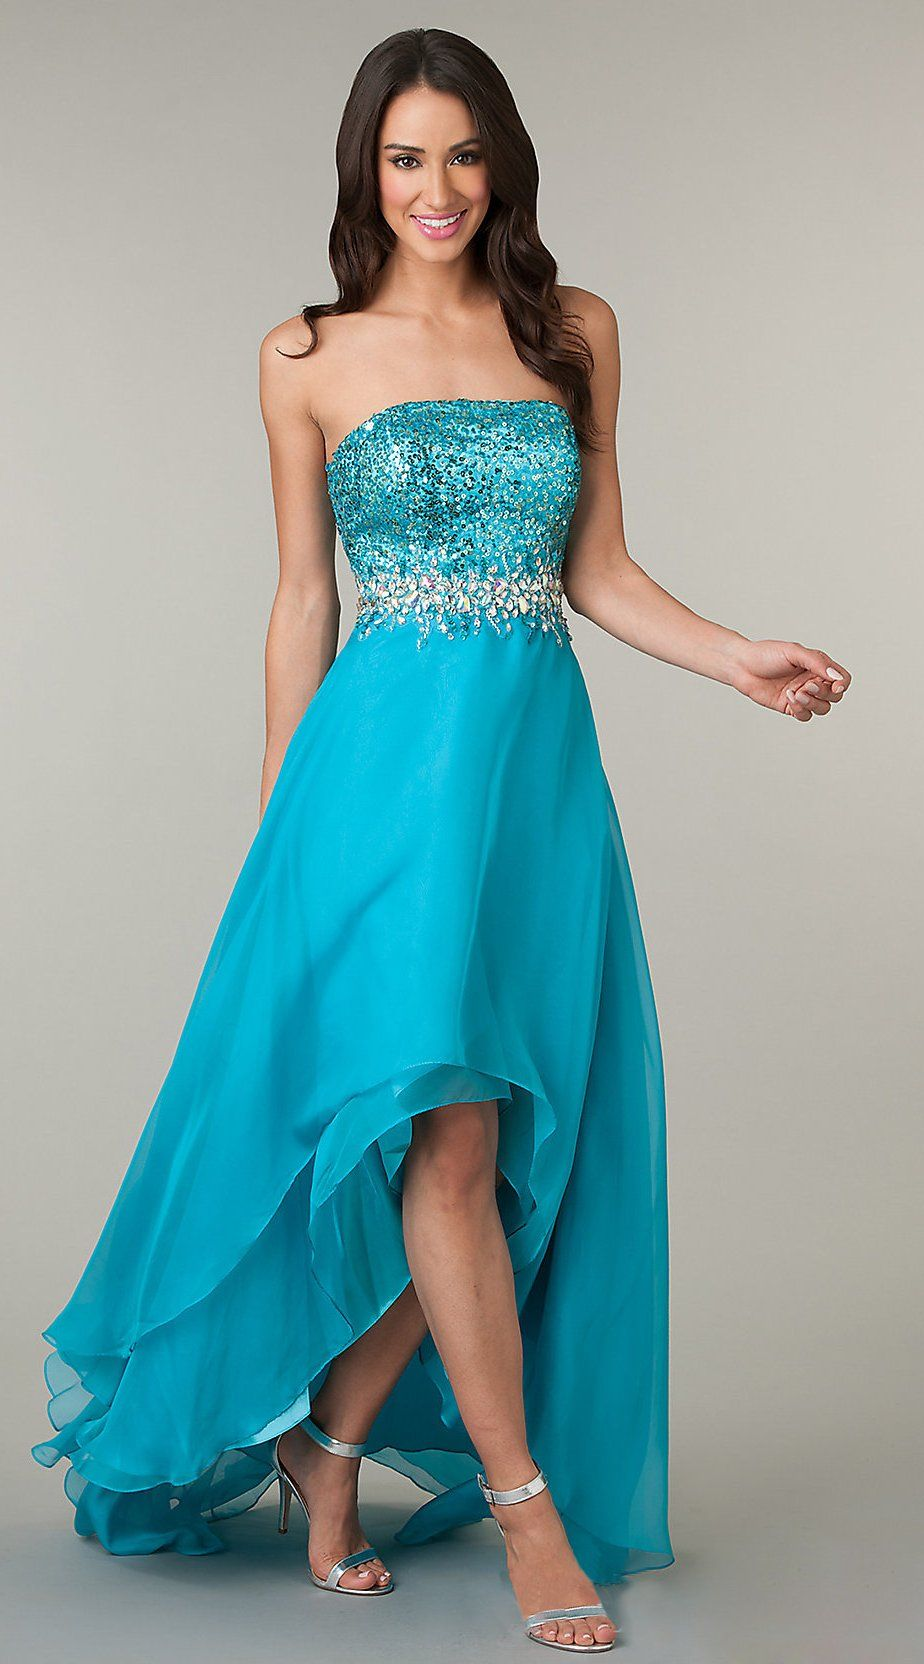 Beautiful High Low Teal Formal Prom Dress Strapless Sequins $199.99 ...